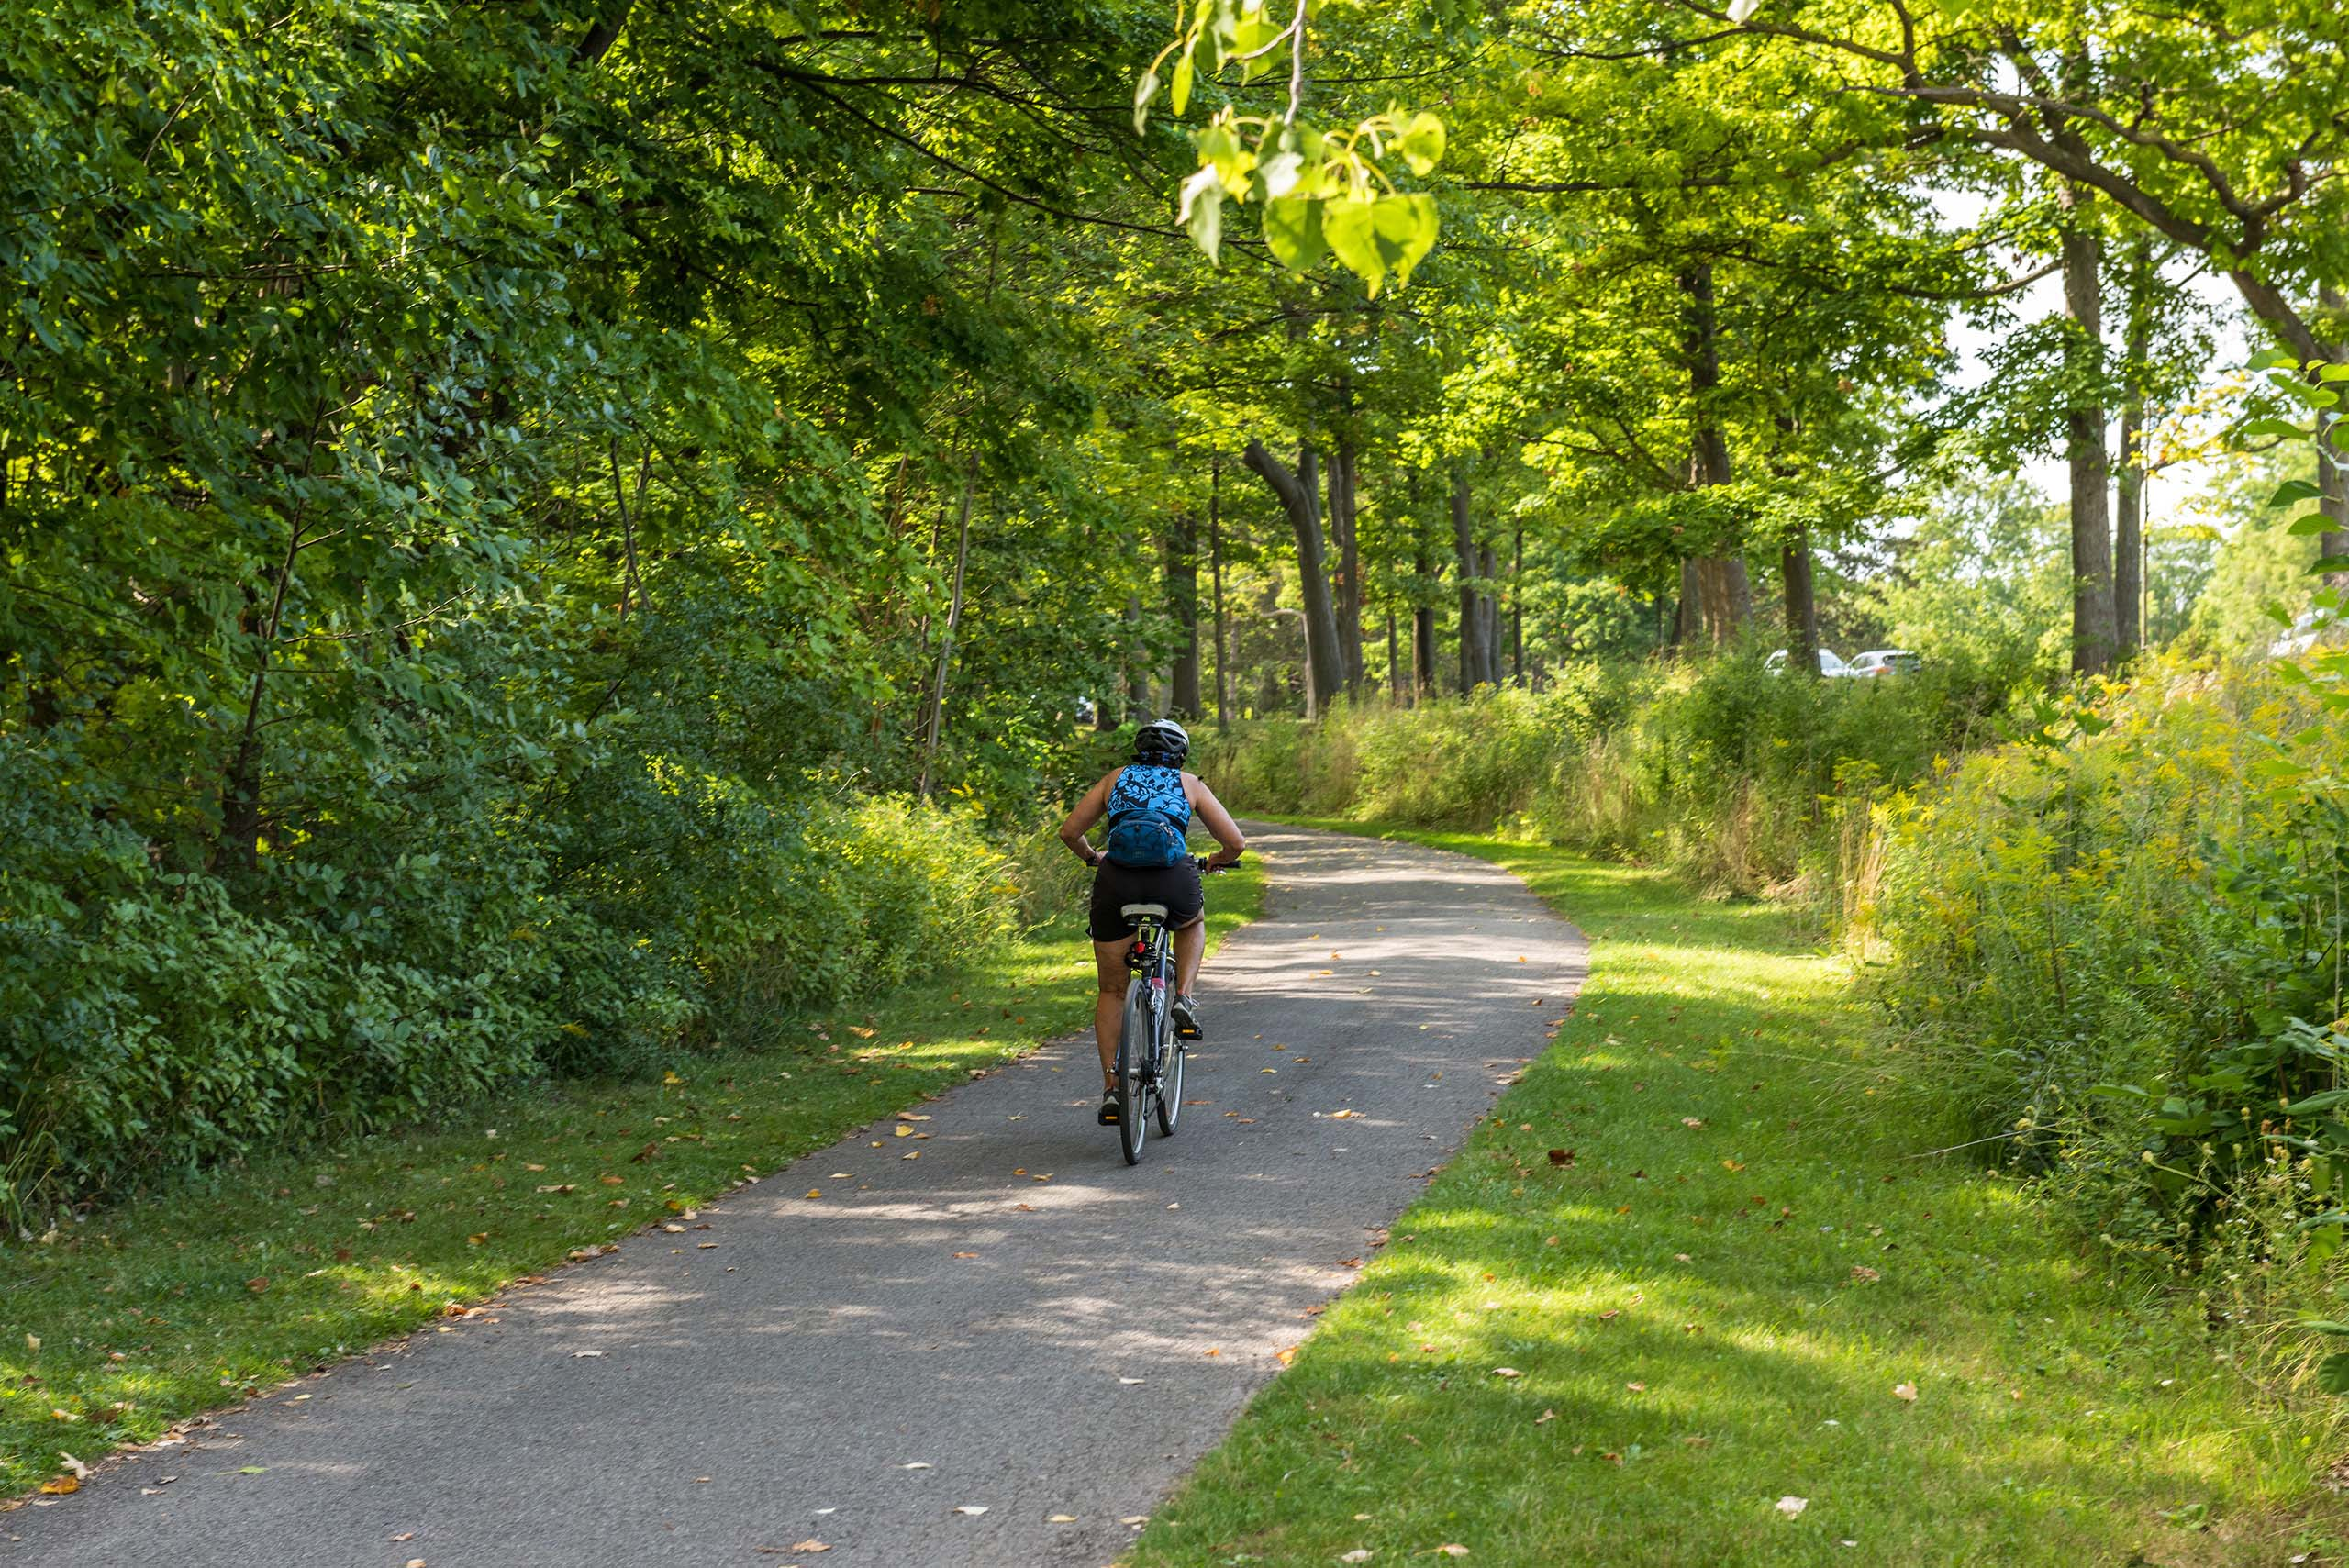 Cycling along the unforgettable Niagara River has never been easier